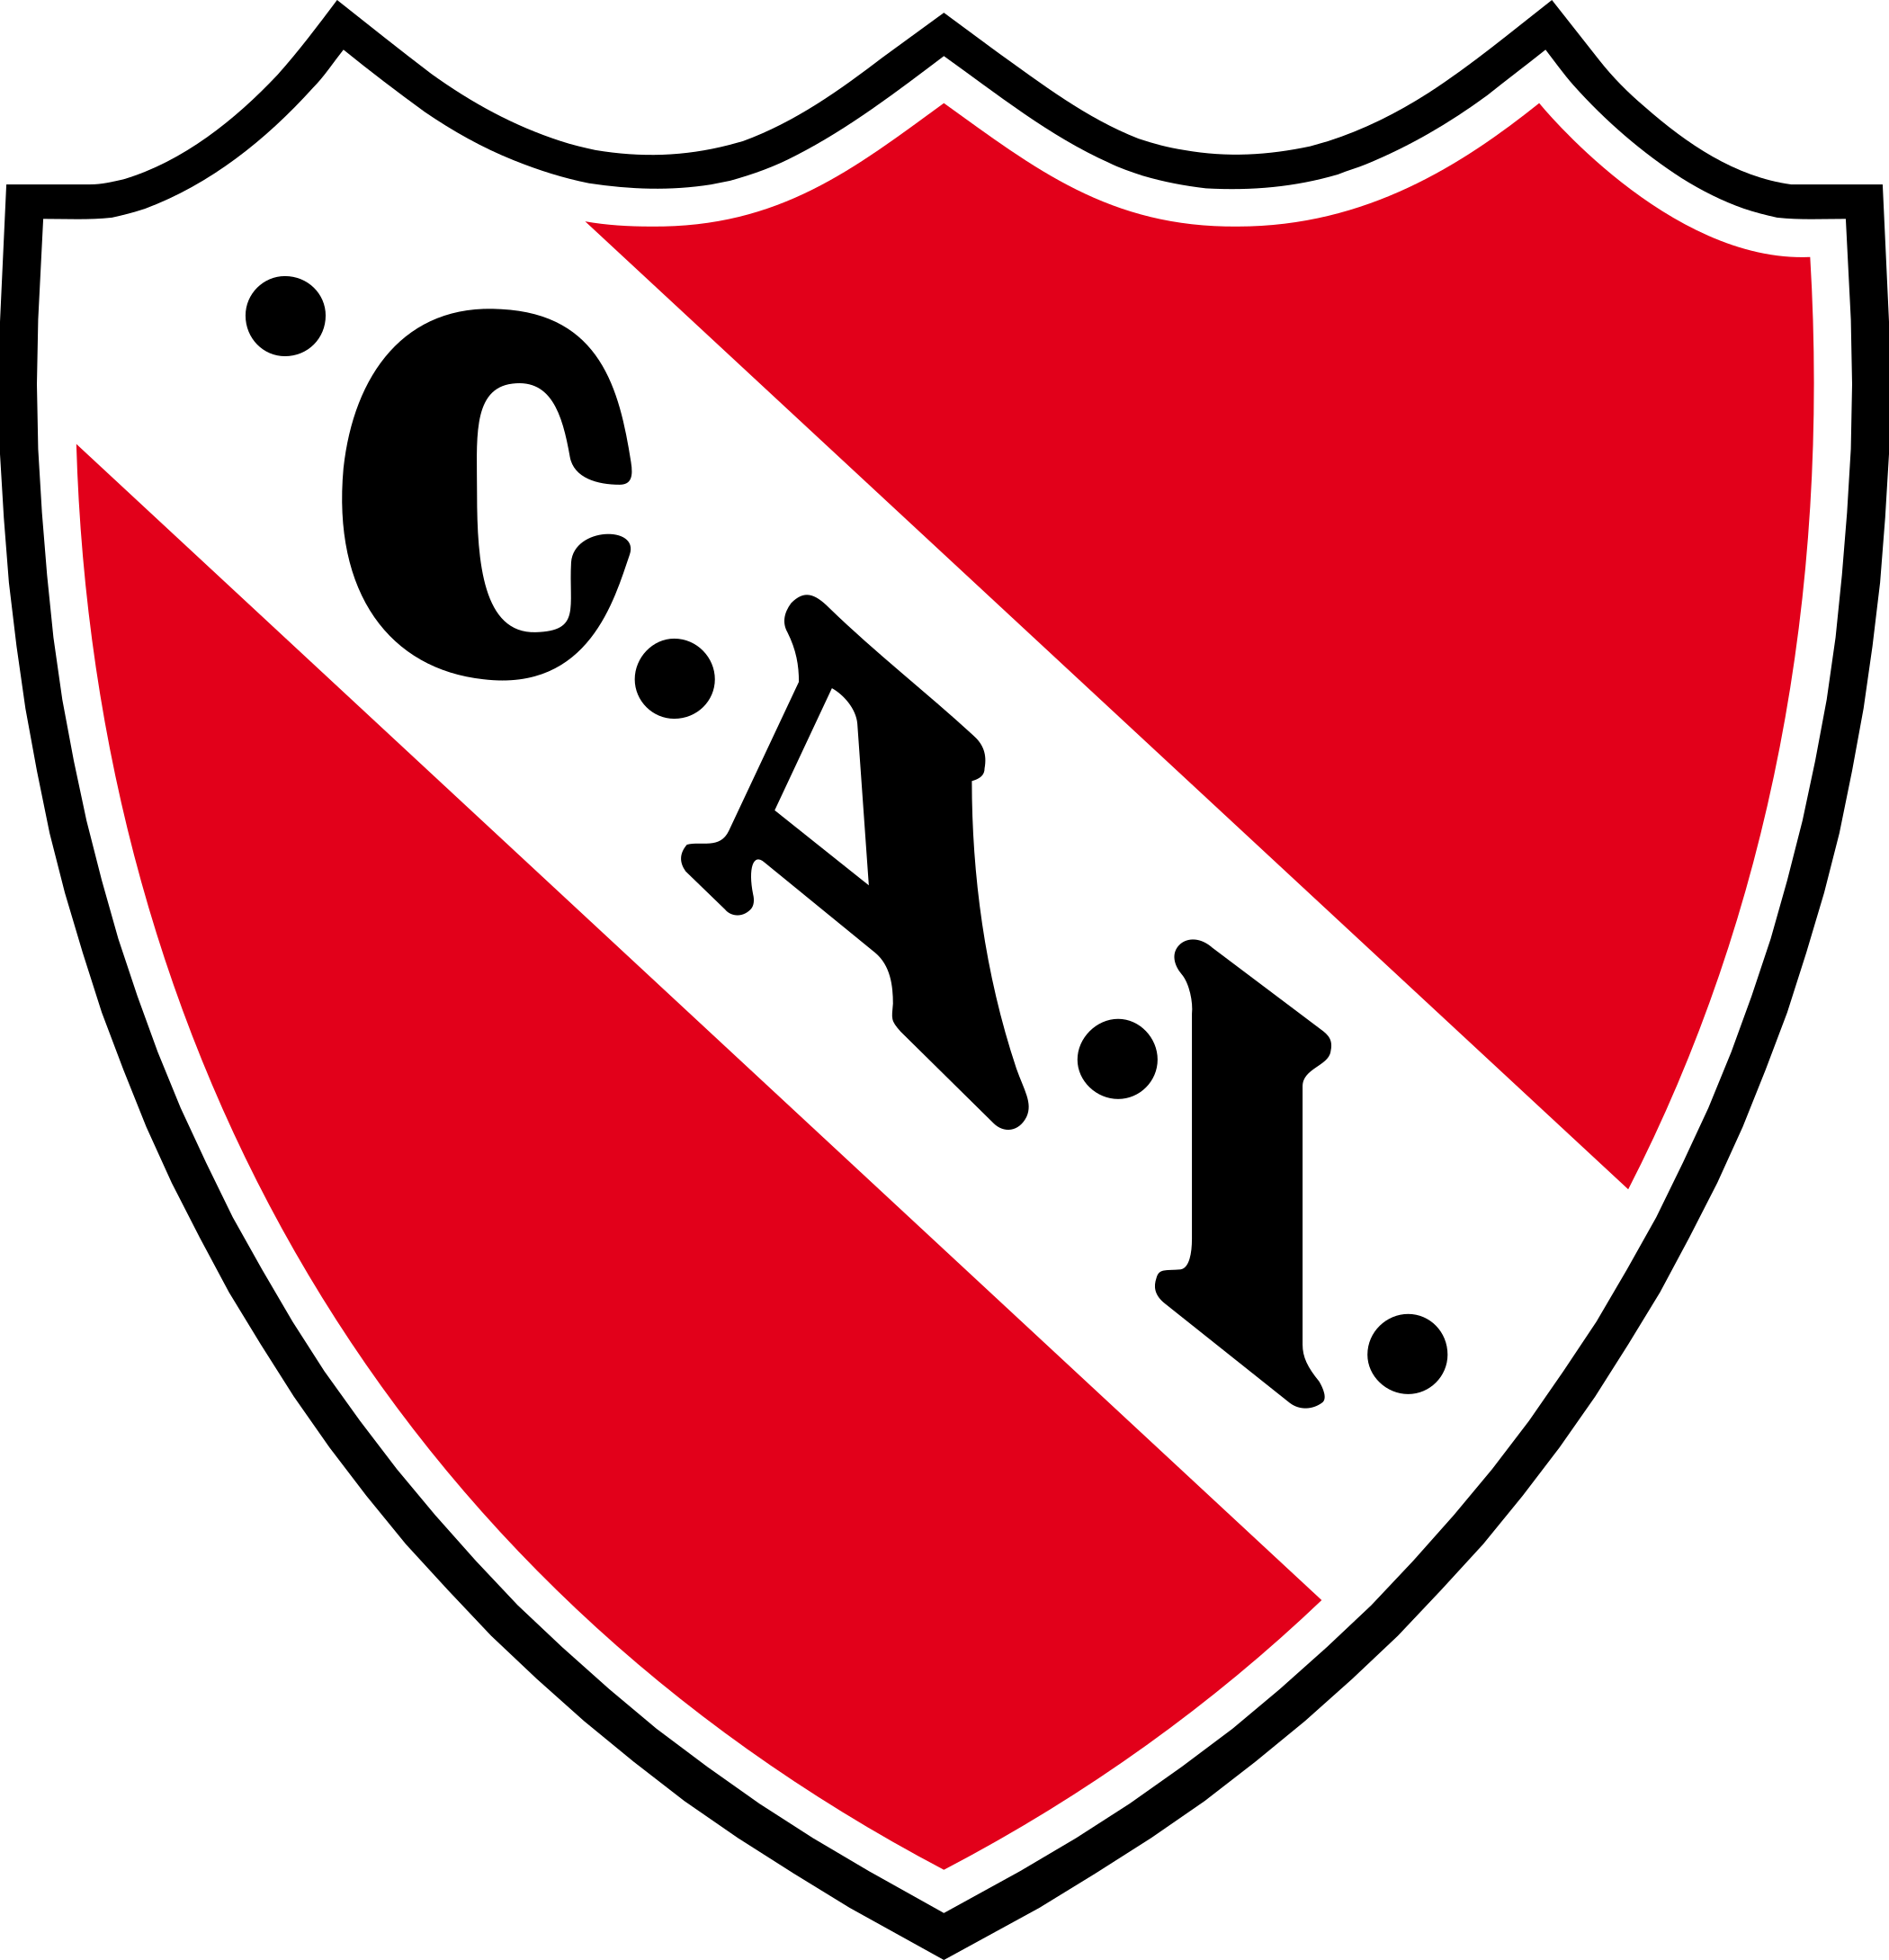 clube independiente logo escudo 1 - Club Atlético Independiente Logo - Escudo